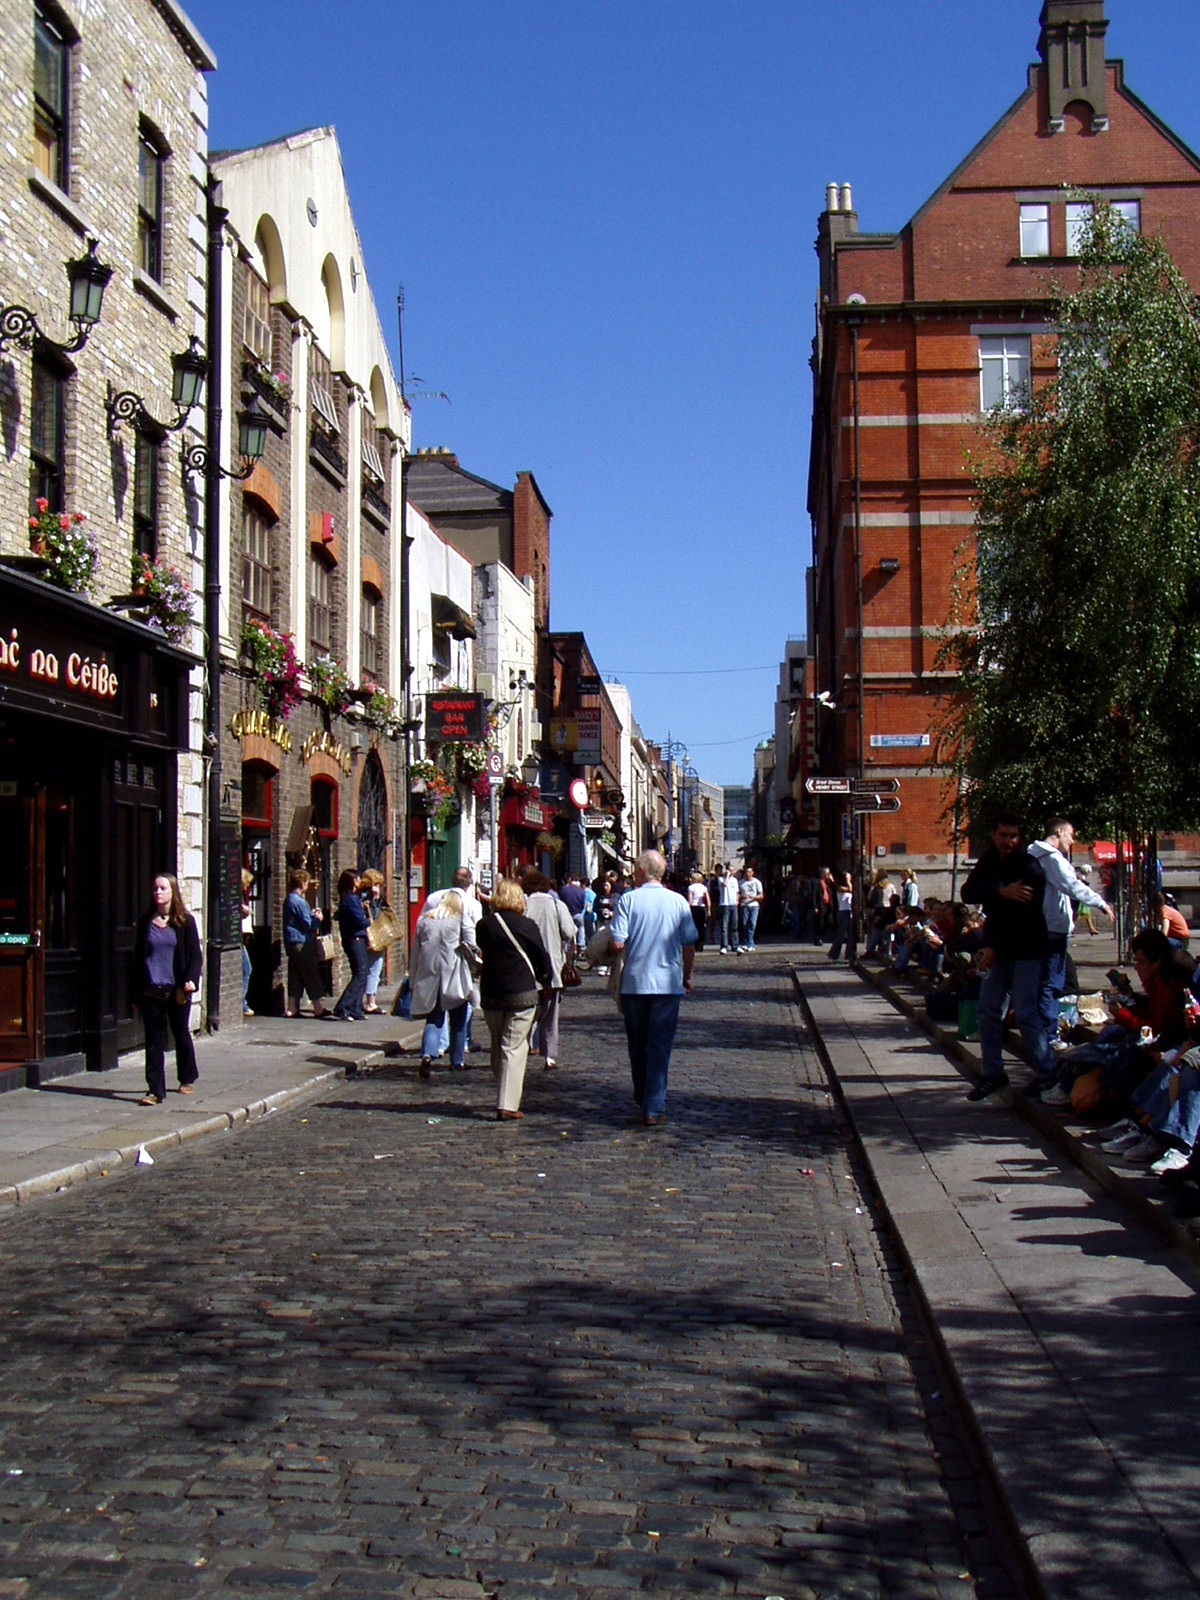 Ditch Dinner and a Movie: 13 Alternative Date Ideas in Dublin